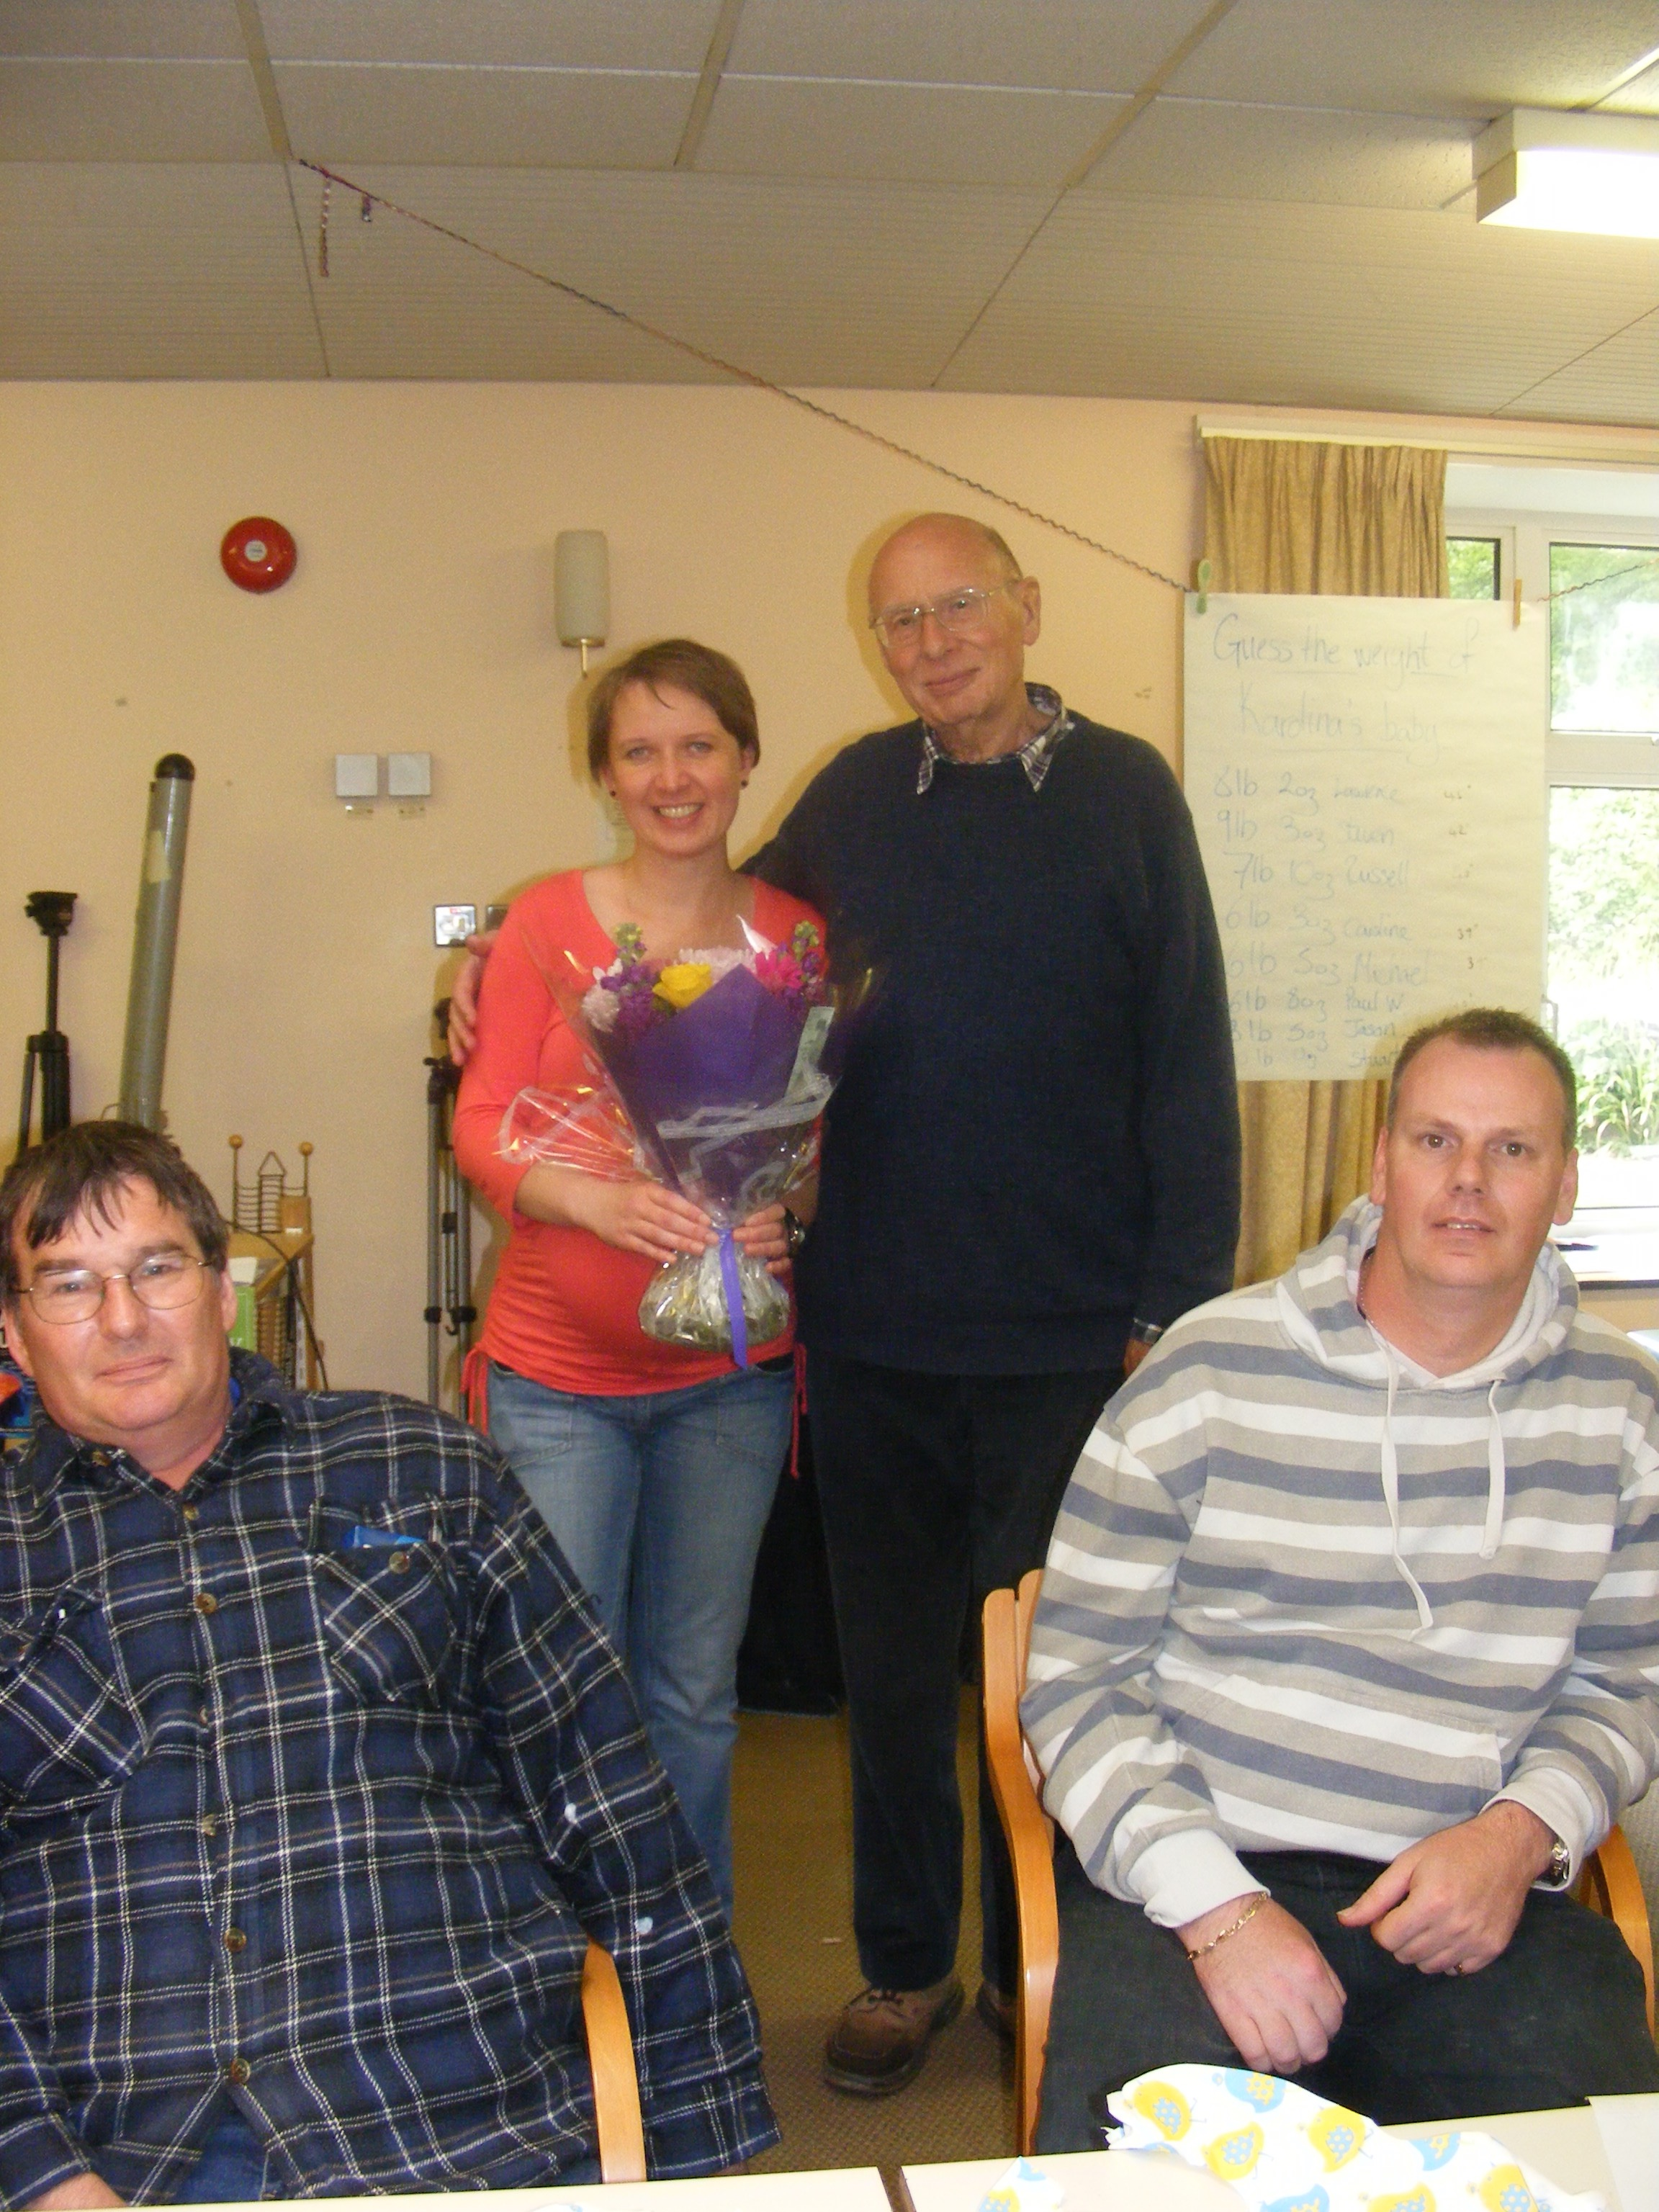 Sandy-with-HW-Basingstoke-administrator-Karolina-Narloch-and-two-service-users